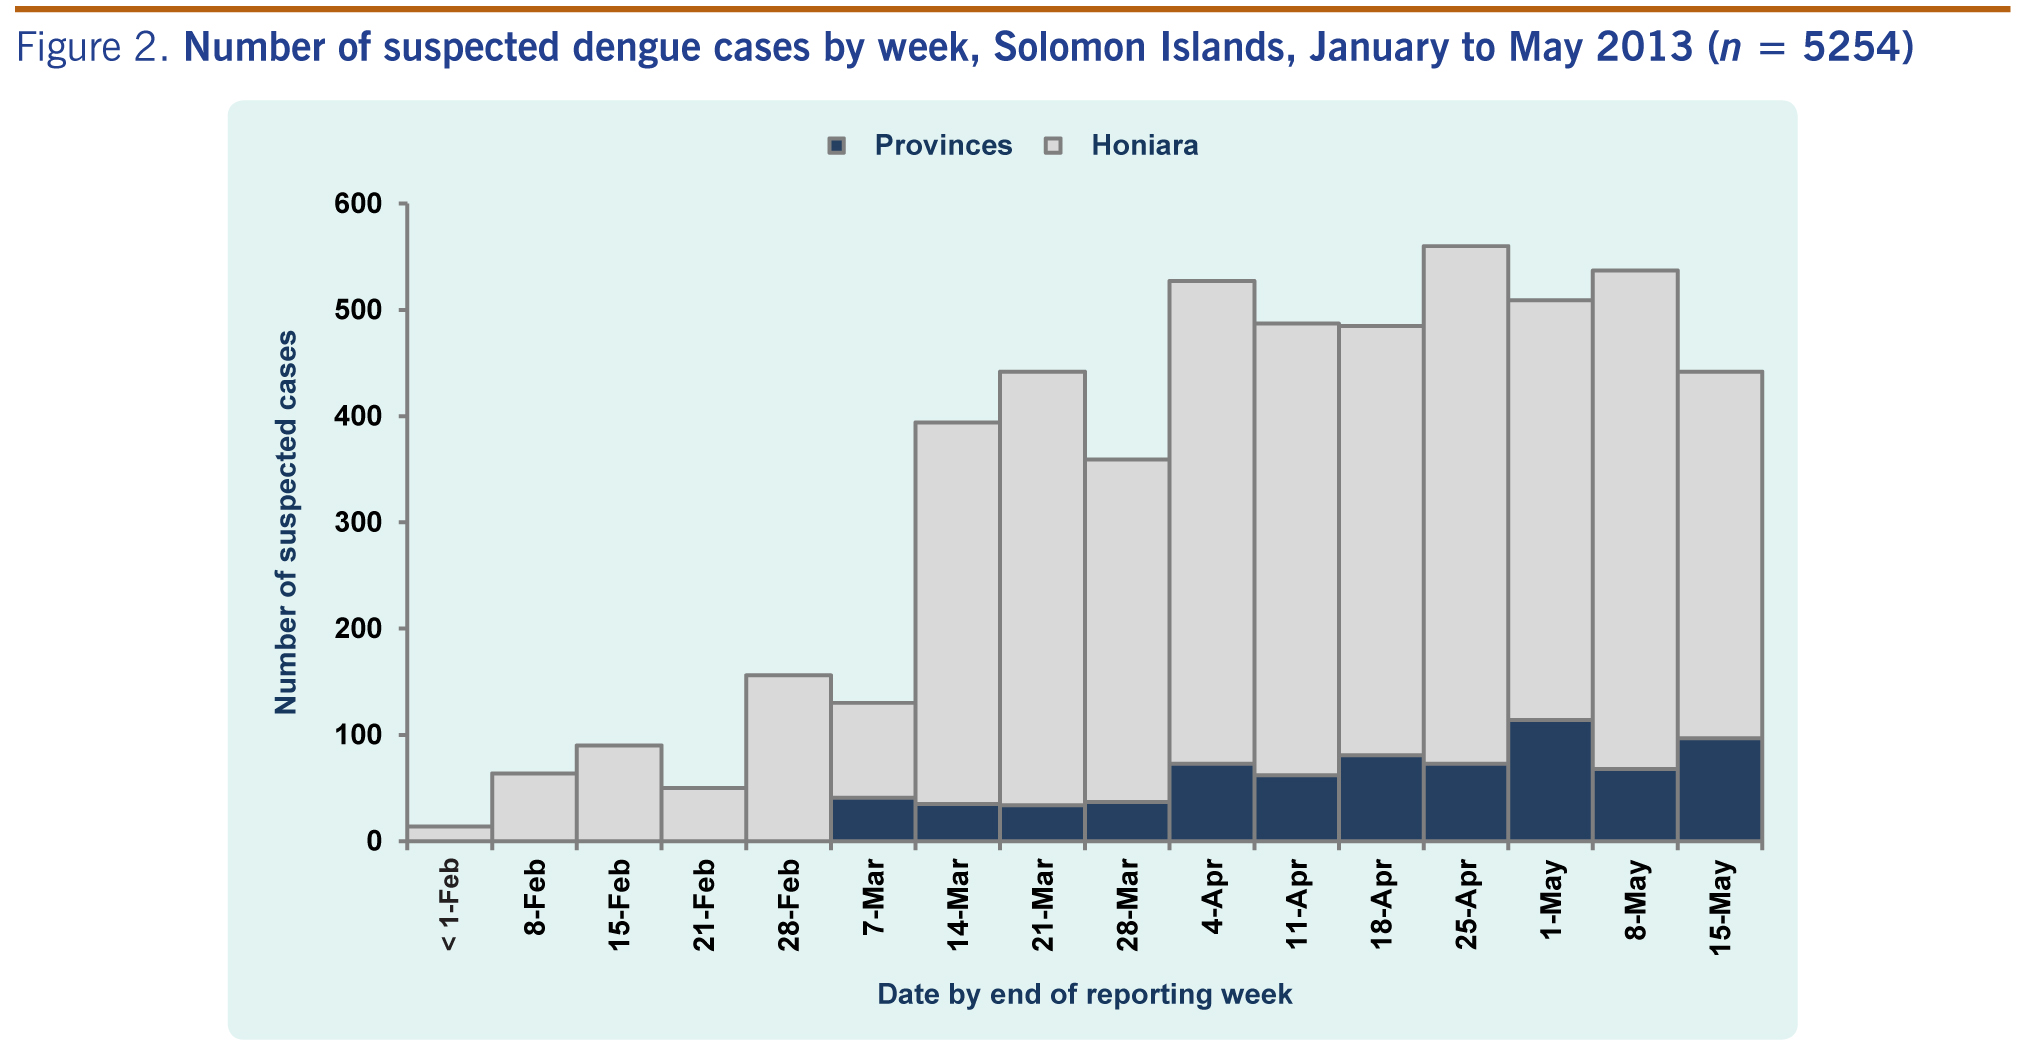 Ongoing outbreak of dengue serotype-3 in Solomon Islands, January to